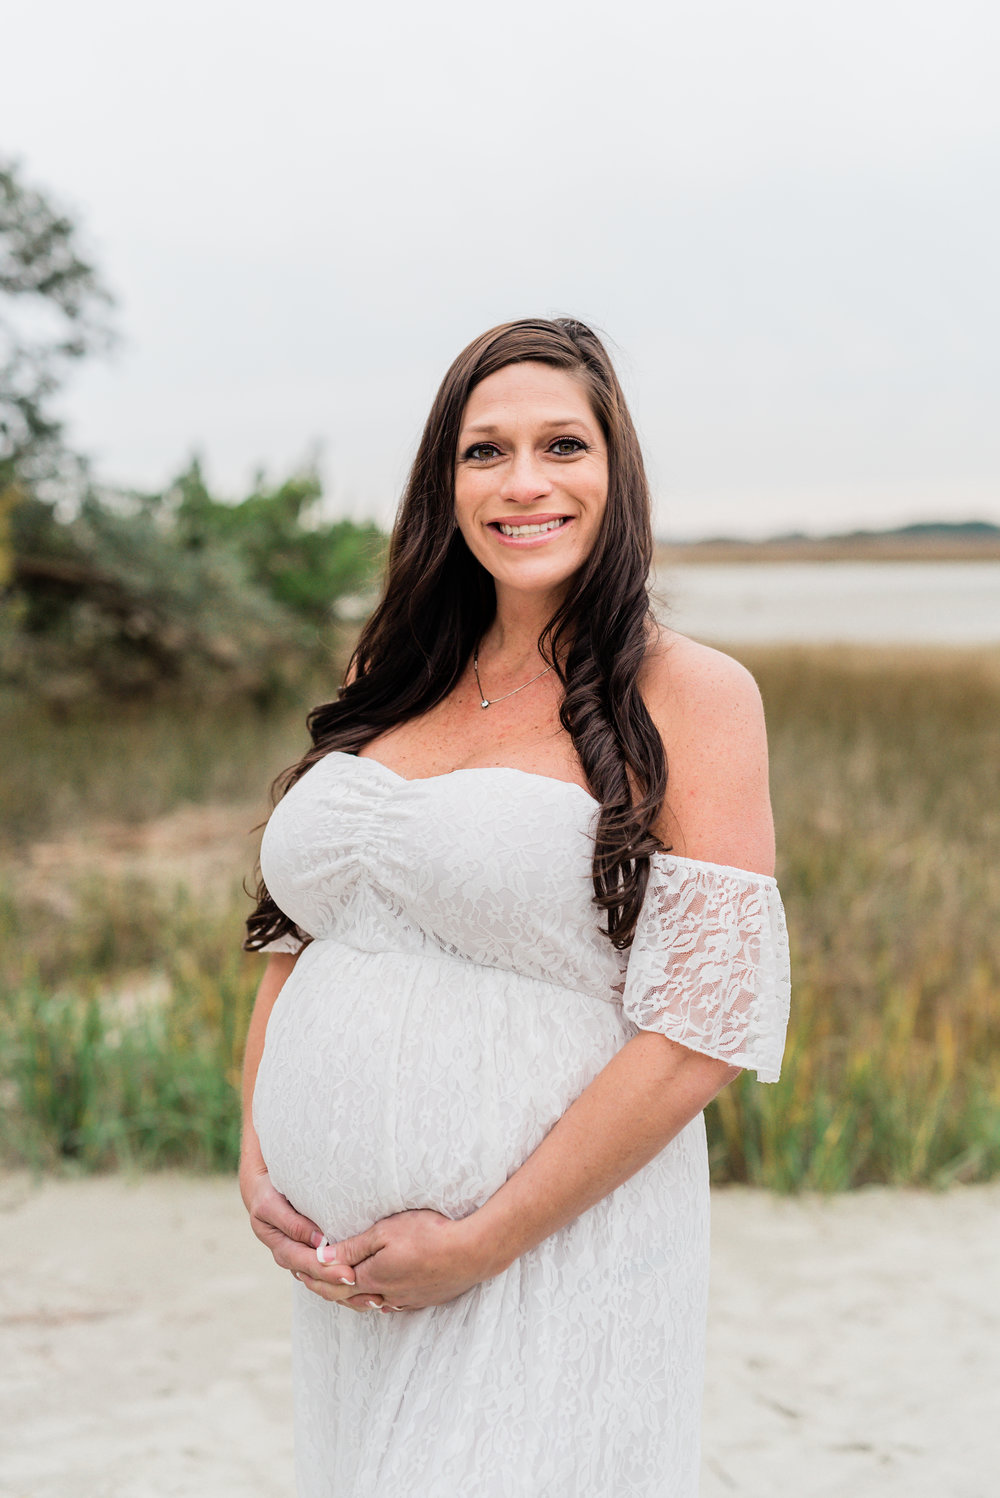 Folly-Beach-Maternity-Photographer-FSP_1590 copy.jpg